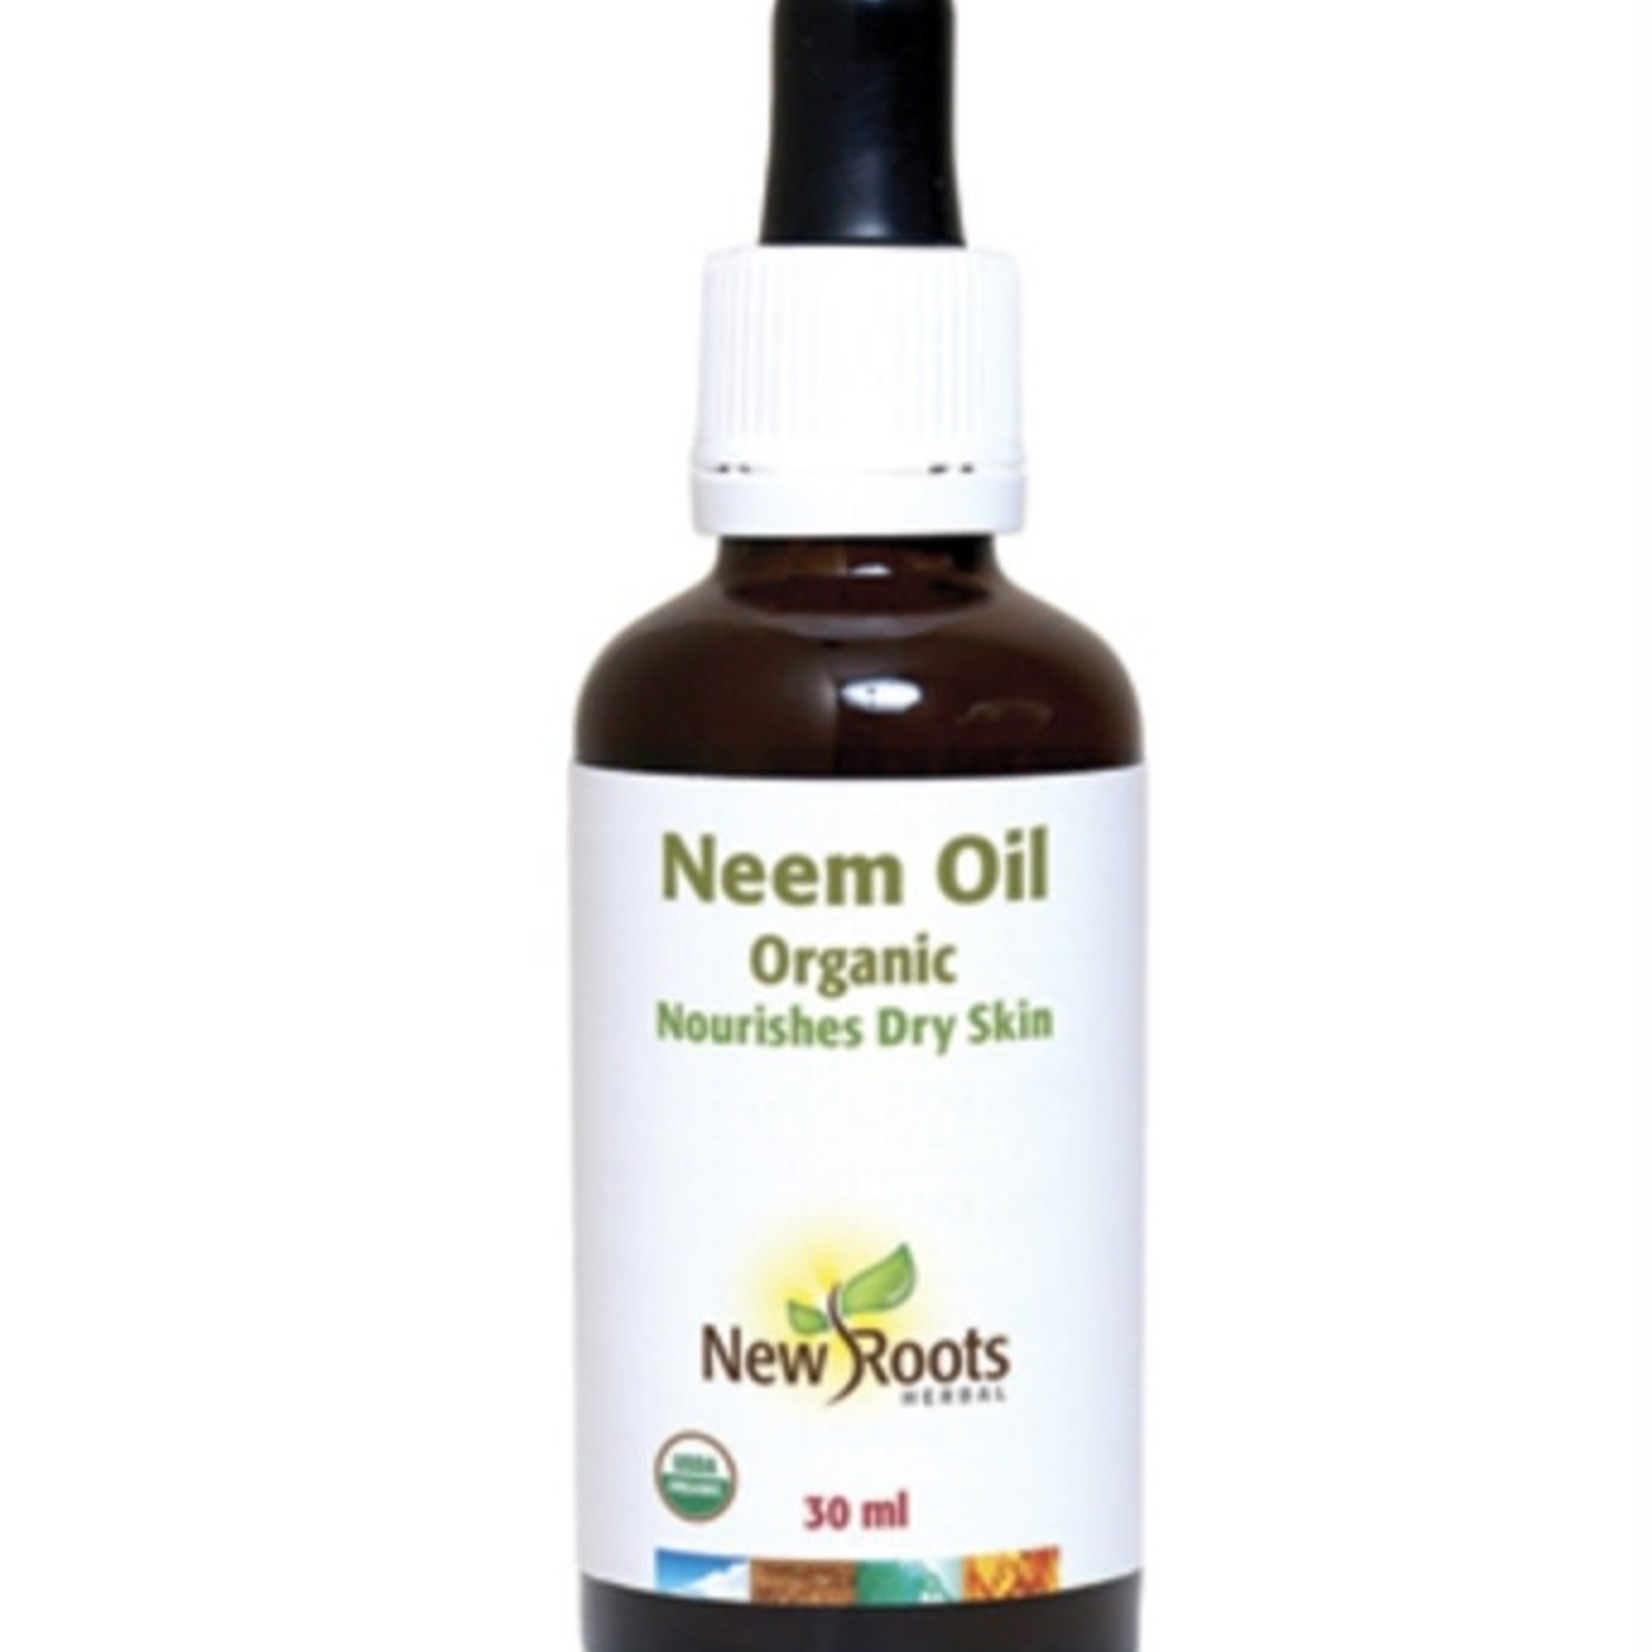 New Roots New Roots Neem Oil 30ml